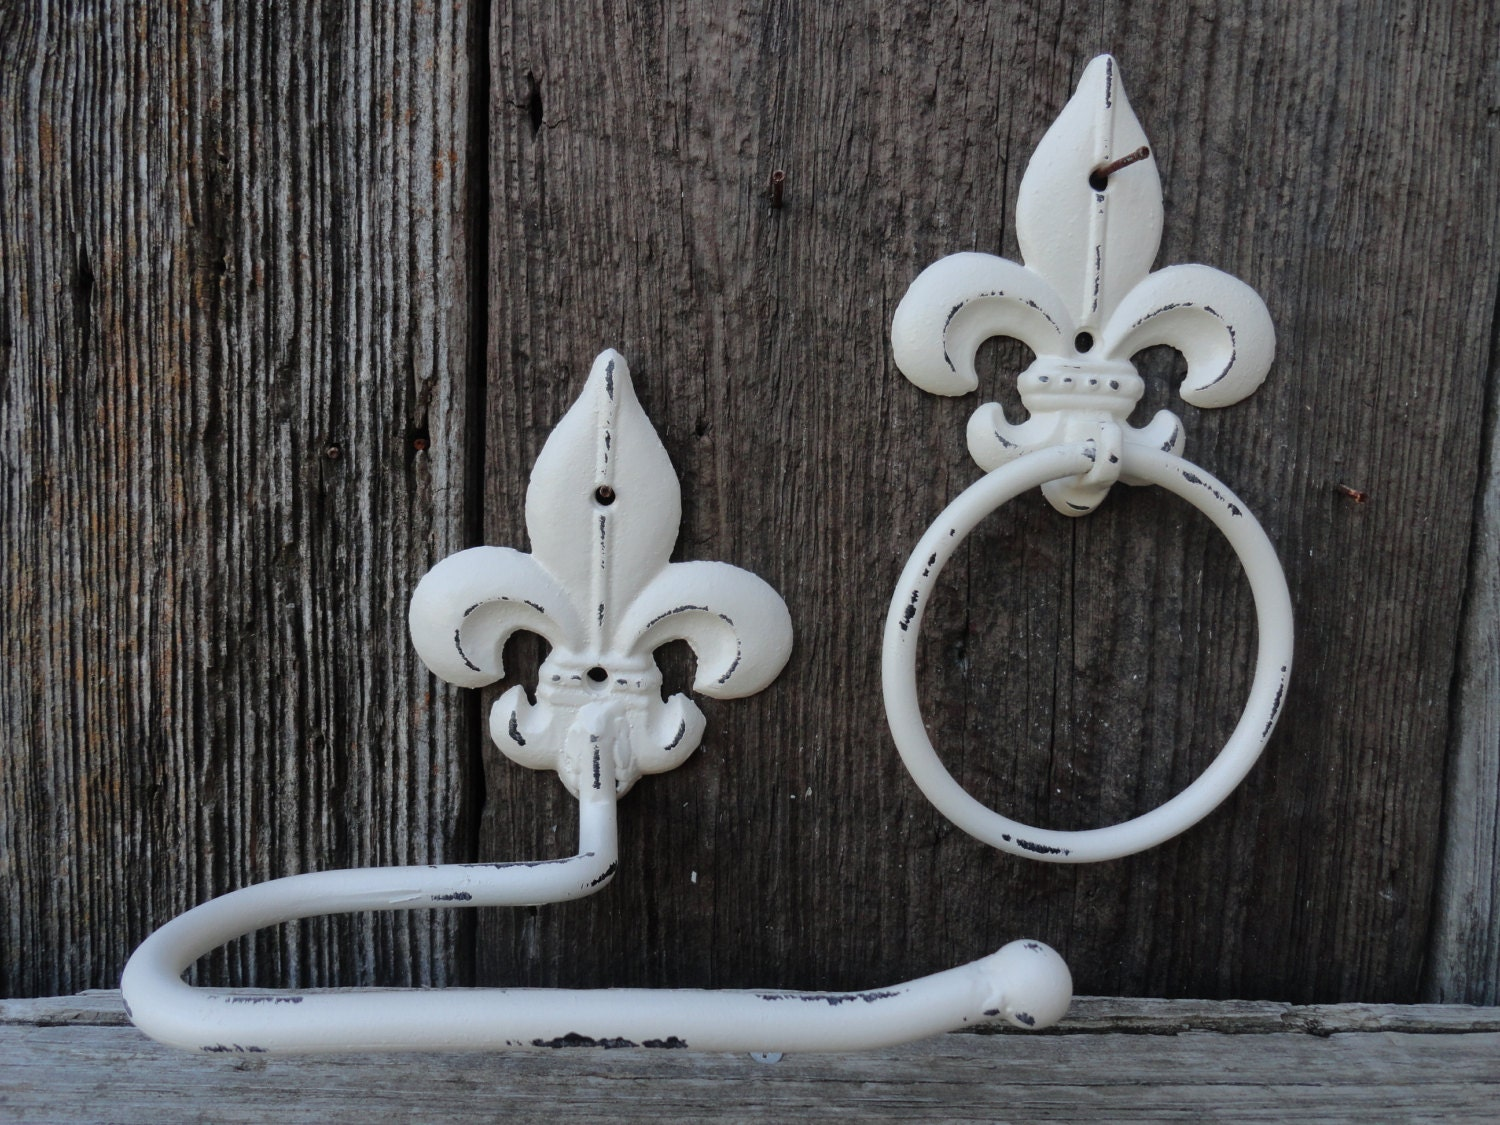 Fleur de lis hand towel ring toilet tissue holder antique - Fleur de lis toilet paper holder ...